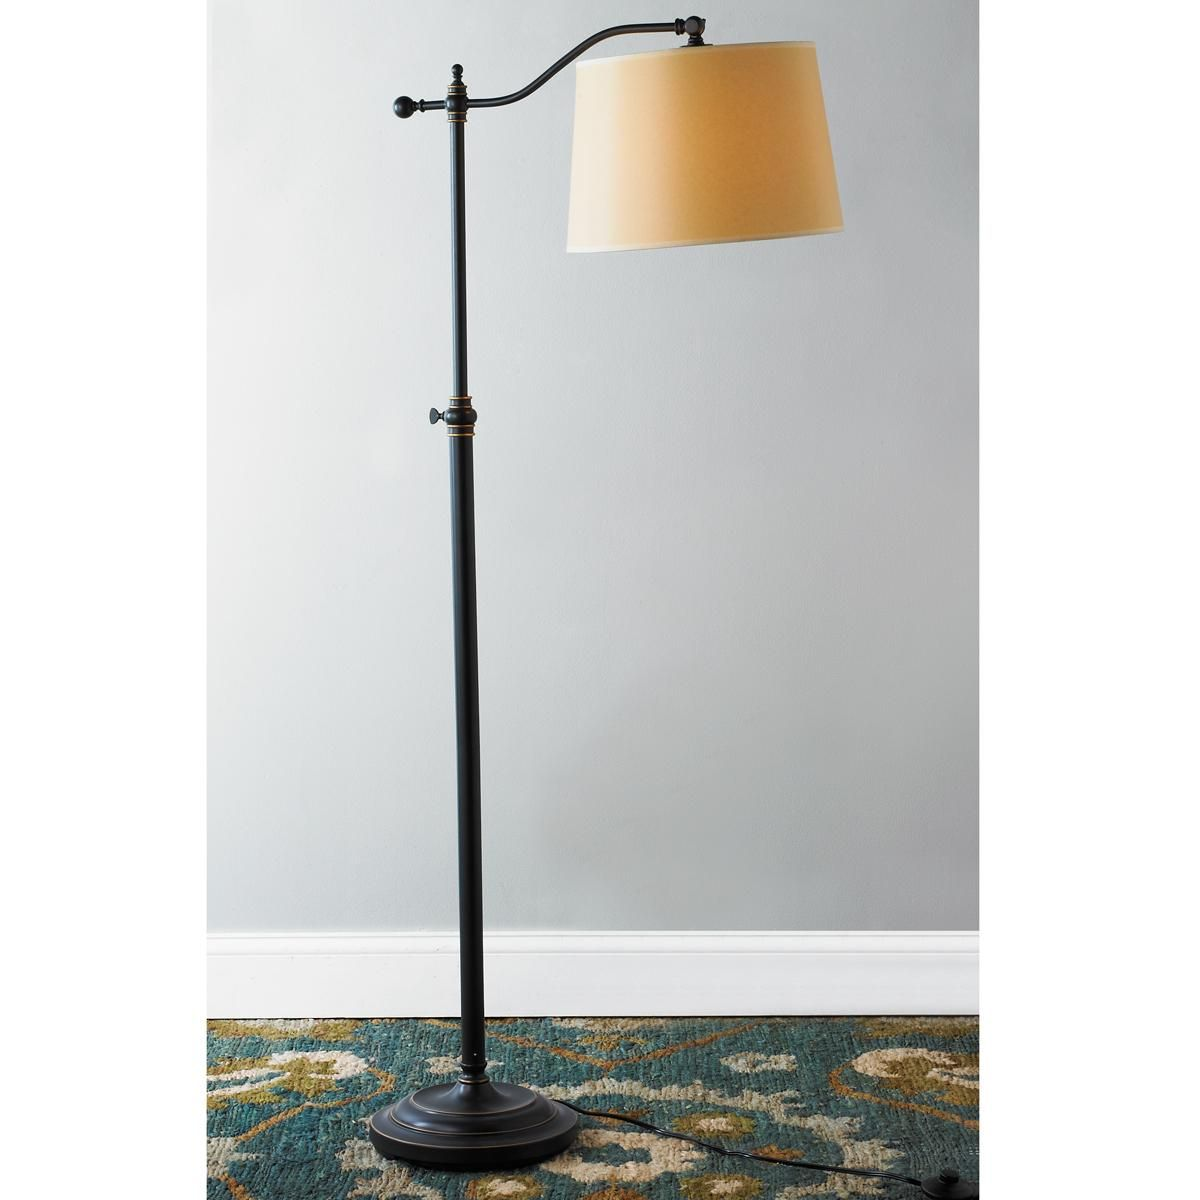 Arched bridge arm adjustable floor lamp